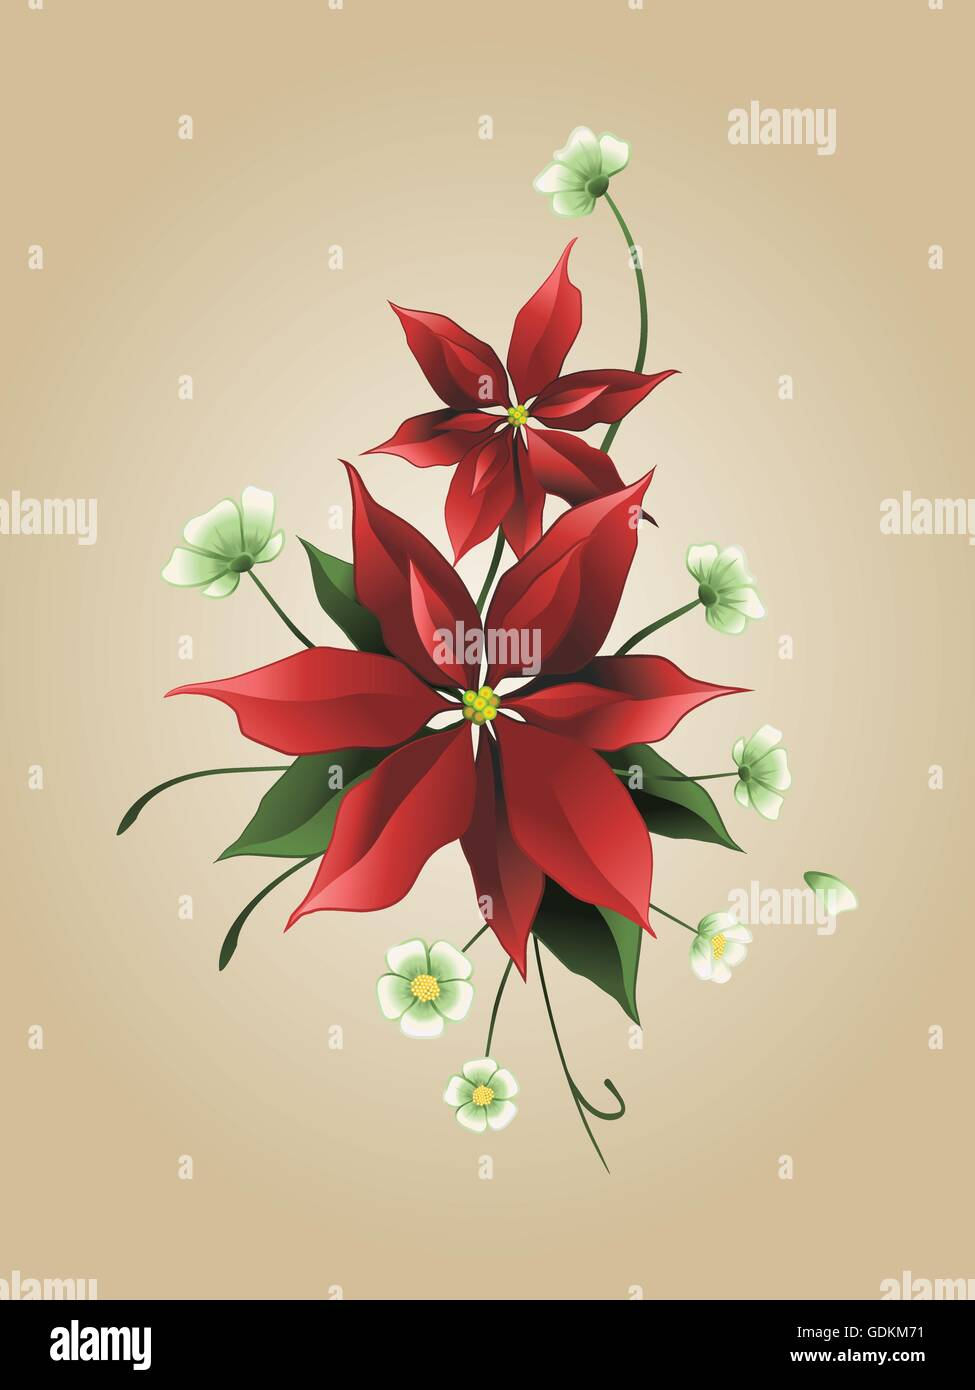 Red poinsettia flower on a sepia background, Christmas card - Stock Vector